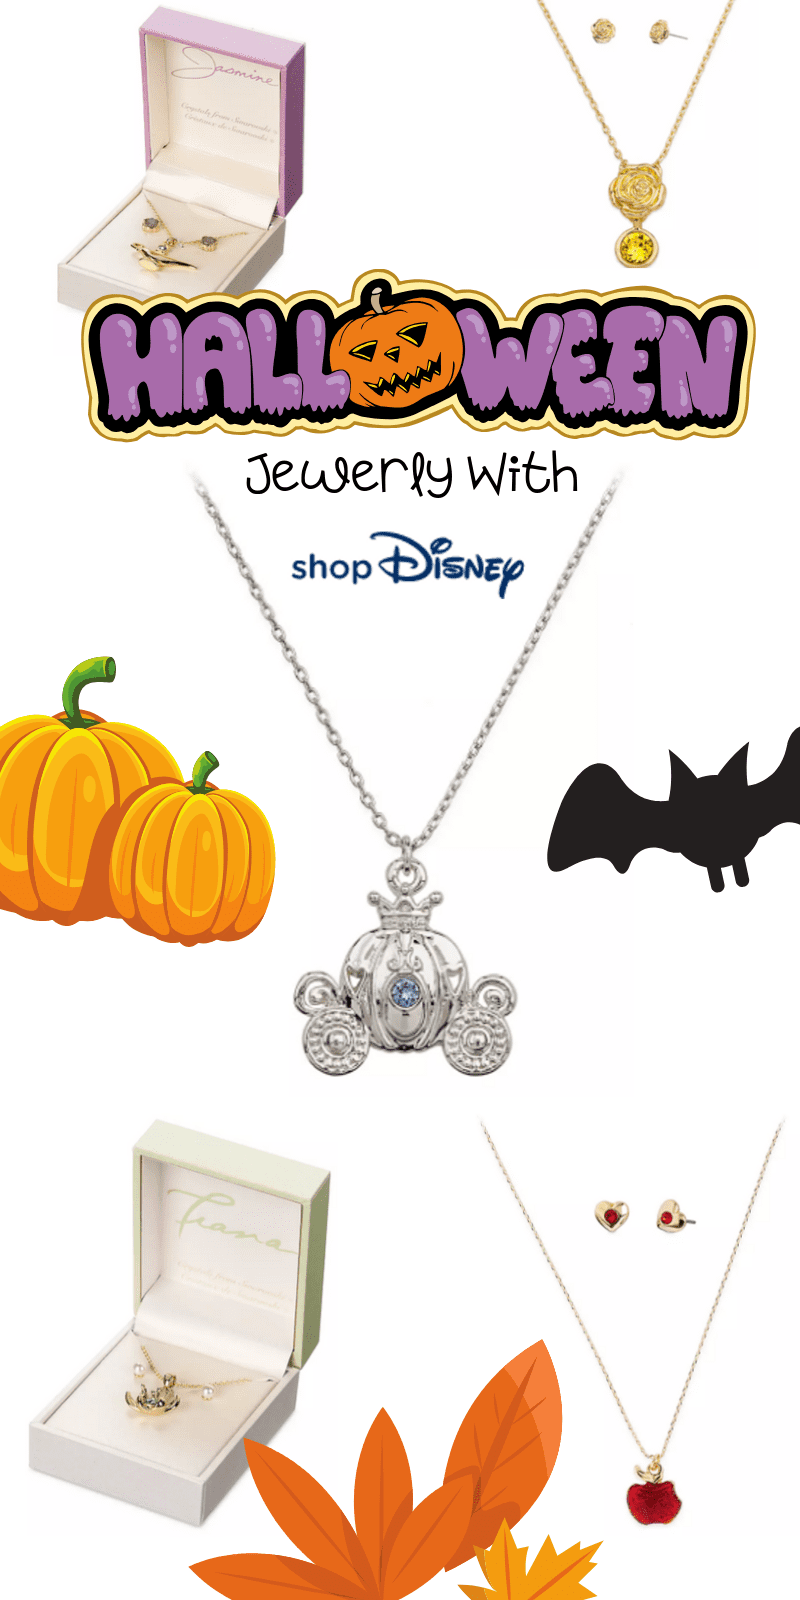 Here are the best in Disney Halloween Jewelry. This fantastic post rounds up the spooky and adorableness of ShopDisney's Halloween Collection for 2019.  #ad @ShopDisney #halloween2019 #disney #disneylove #disneymagic #waltdisney #disneyprincess #mickeymouse #disneyphoto #disneylife #disneyfan #mickey #disneyaddict #disnerd #starwars #halloween